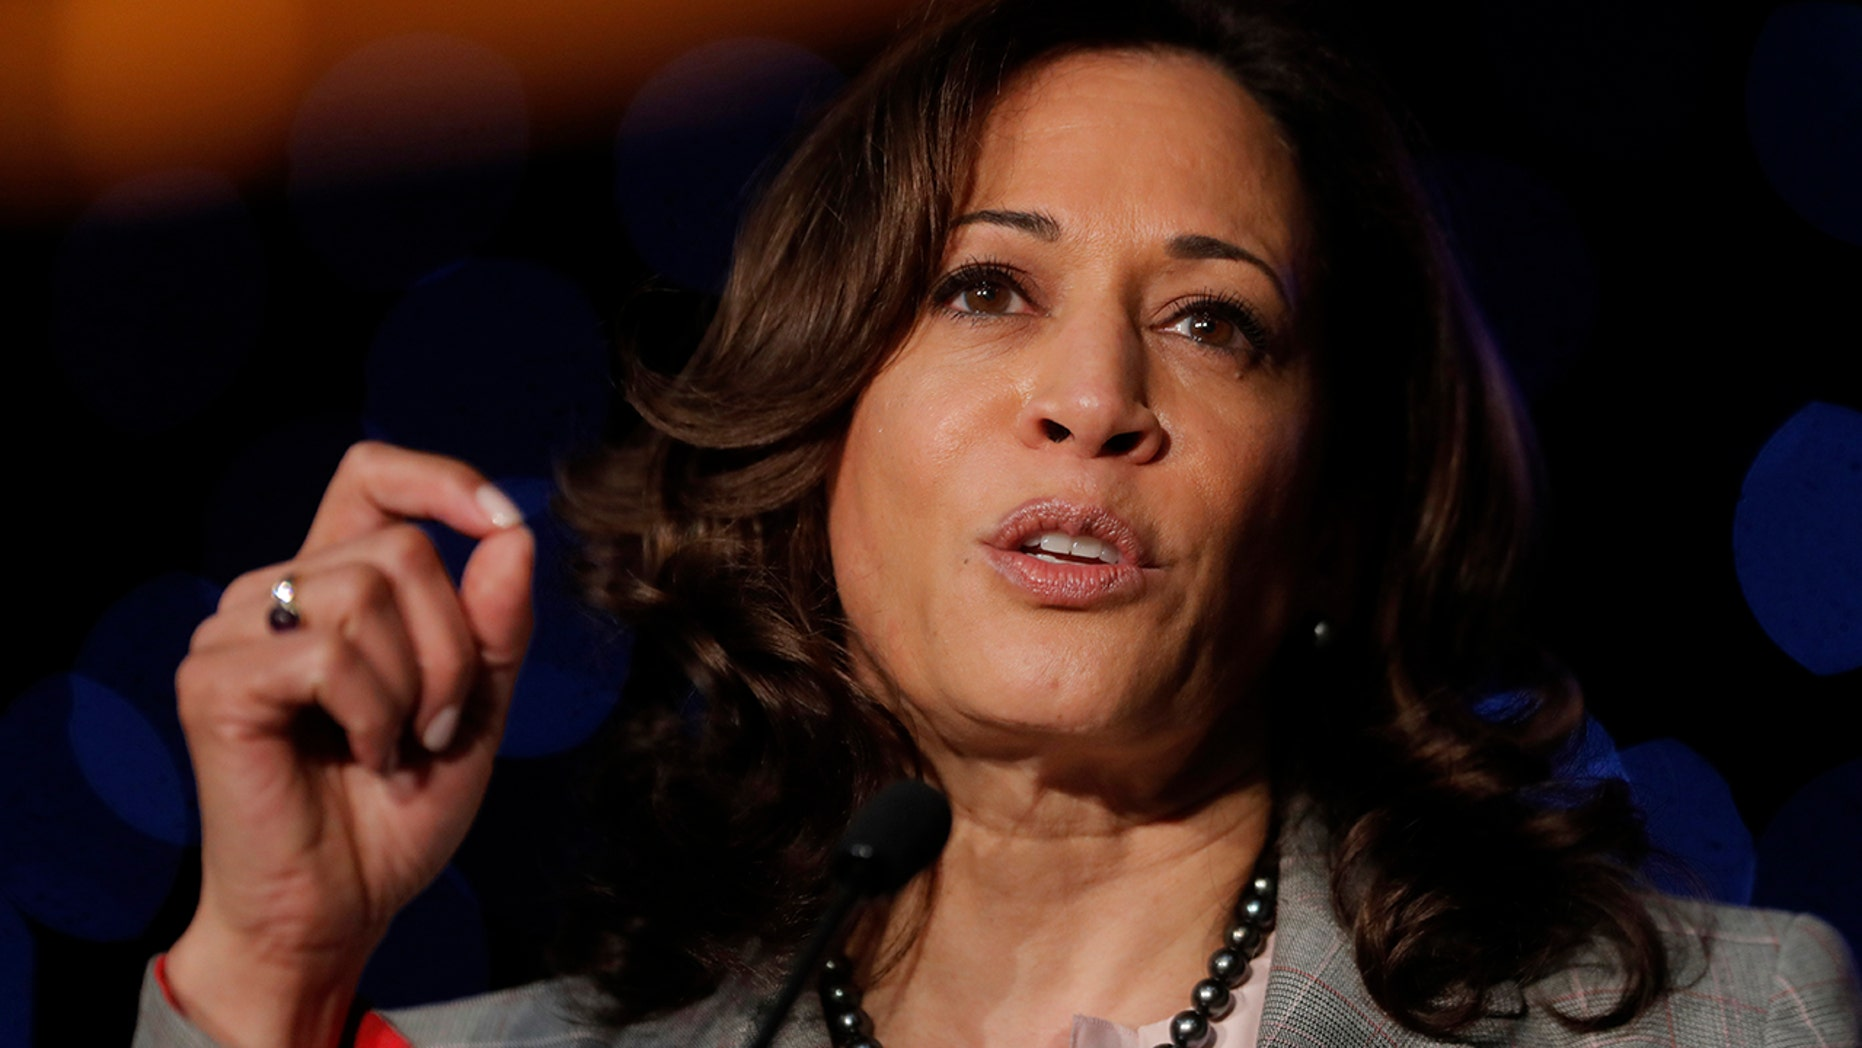 Democratic presidential Candidate Sen. Kamala Harris, D-Calif., speaks at the Alpha Kappa Alpha Sorority South Central Regional Conference in New Orleans. (AP Photo/Gerald Herbert)